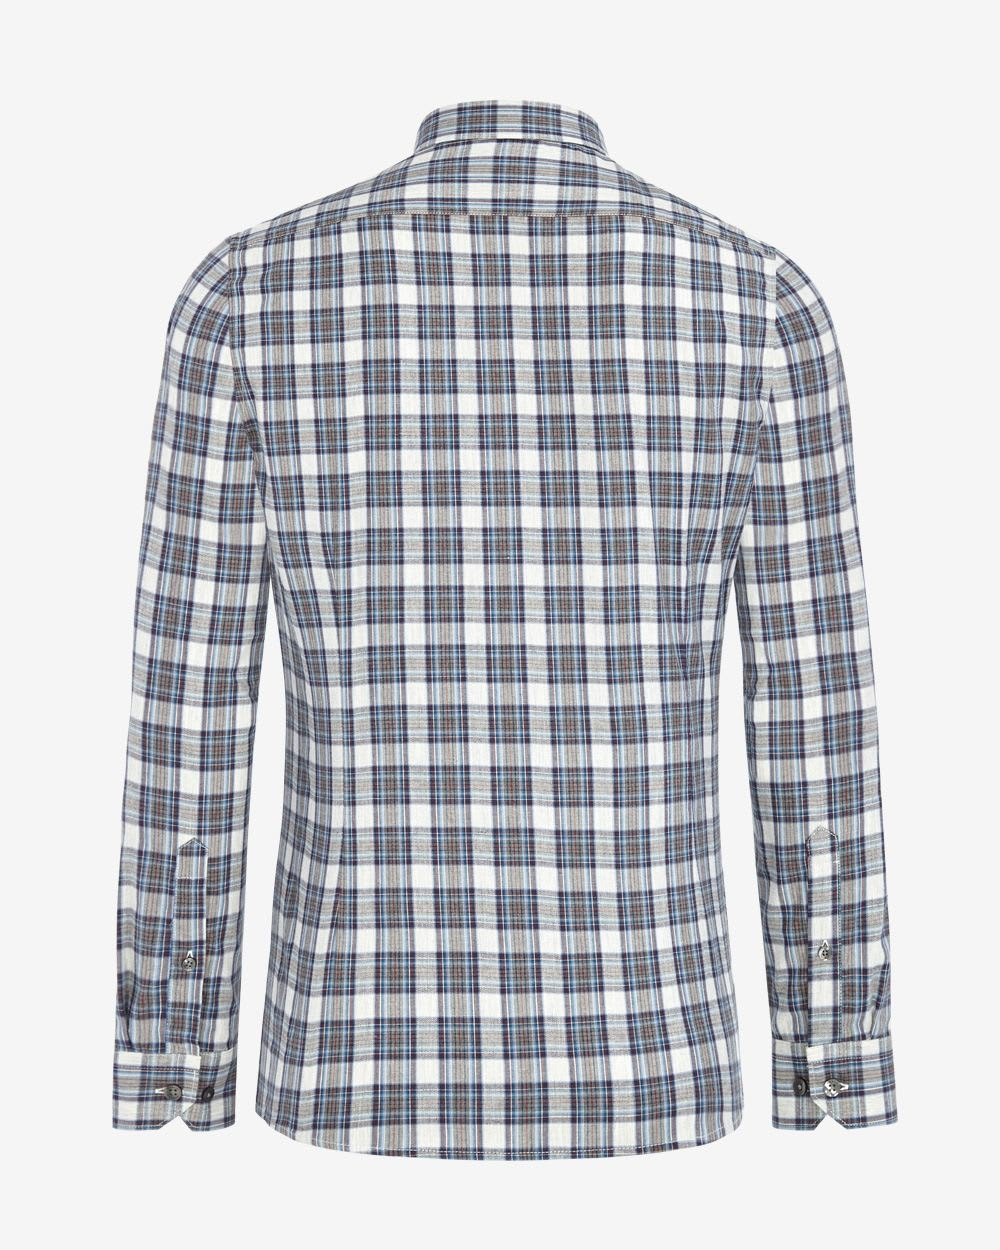 6eed6c4c81 Tailored fit multicoloured check shirt | RW&CO.